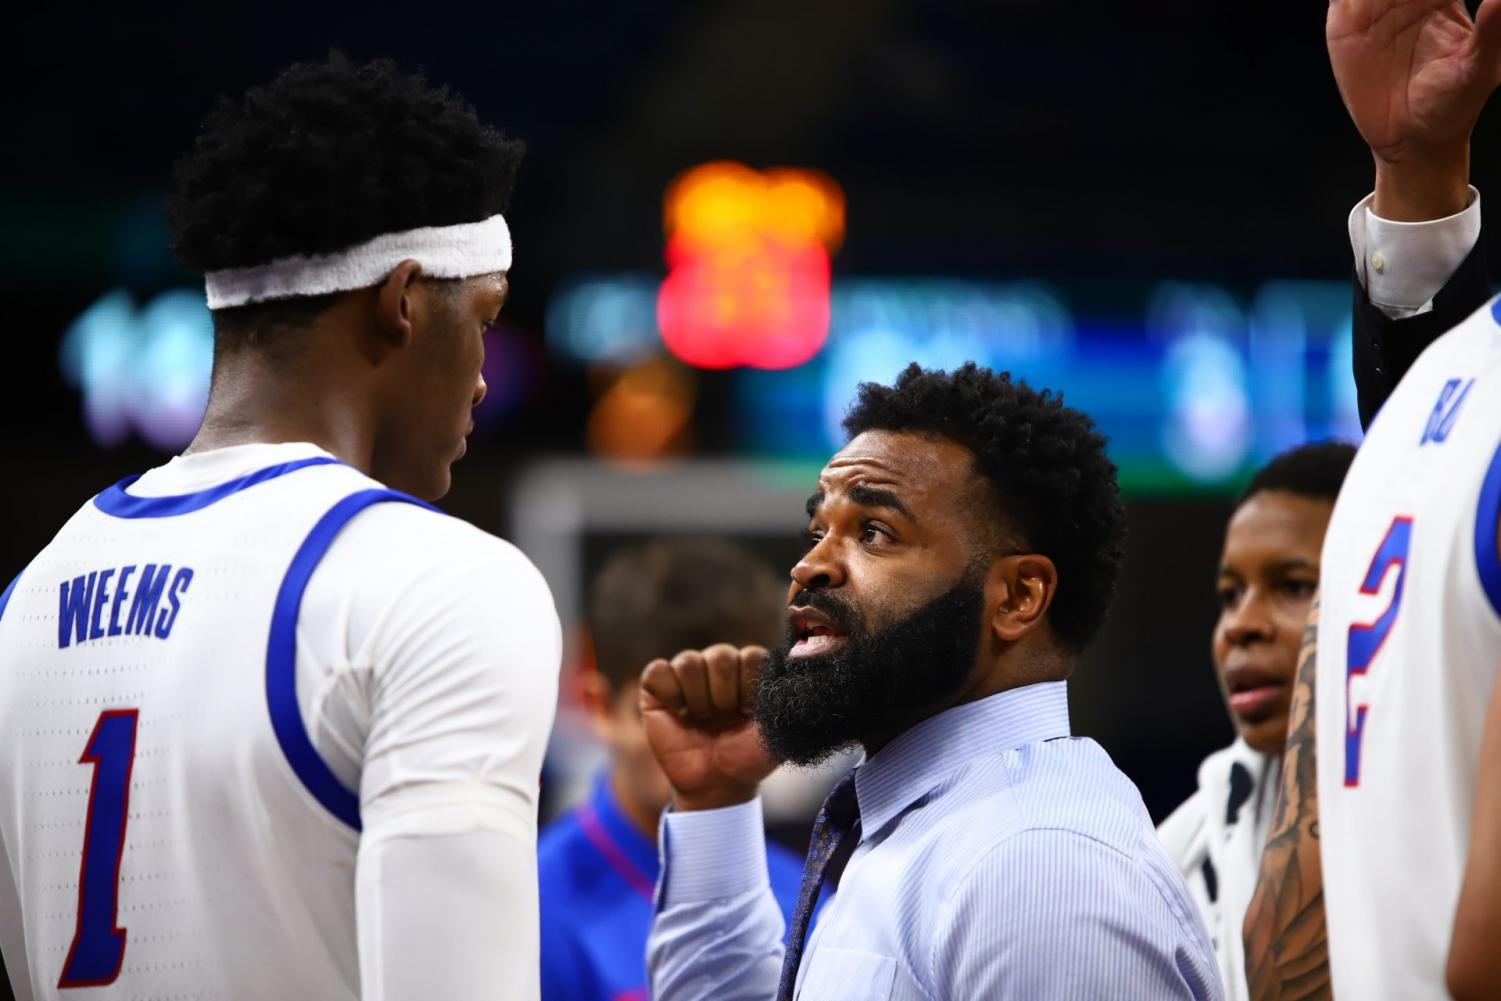 DePaul interim head coach Tim Anderson talks with freshman forward Romeo Weems during DePaul's game against the University of Chicago on Wednesday at Wintrust.